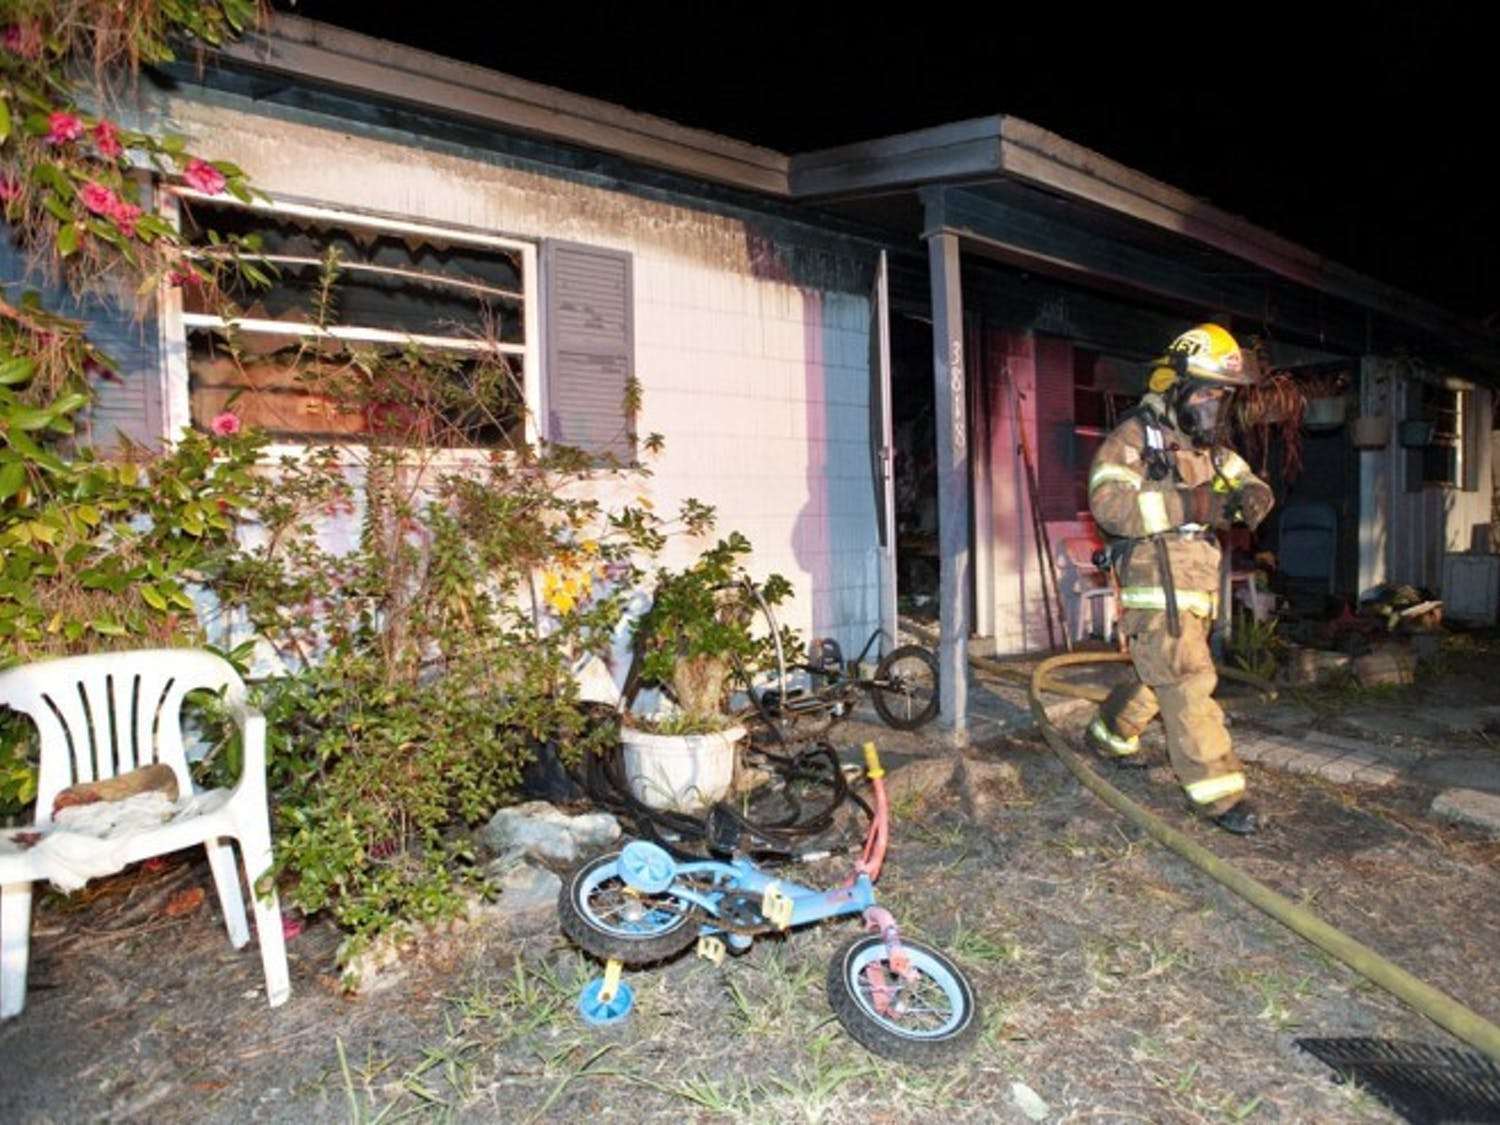 A firefighter walks out of a burned house at 3818 NE 12th St. Fire Rescue District Chief Richard Saulsberry said five adults and two children lived in the house, but only one elderly woman was home at the time of the incident.